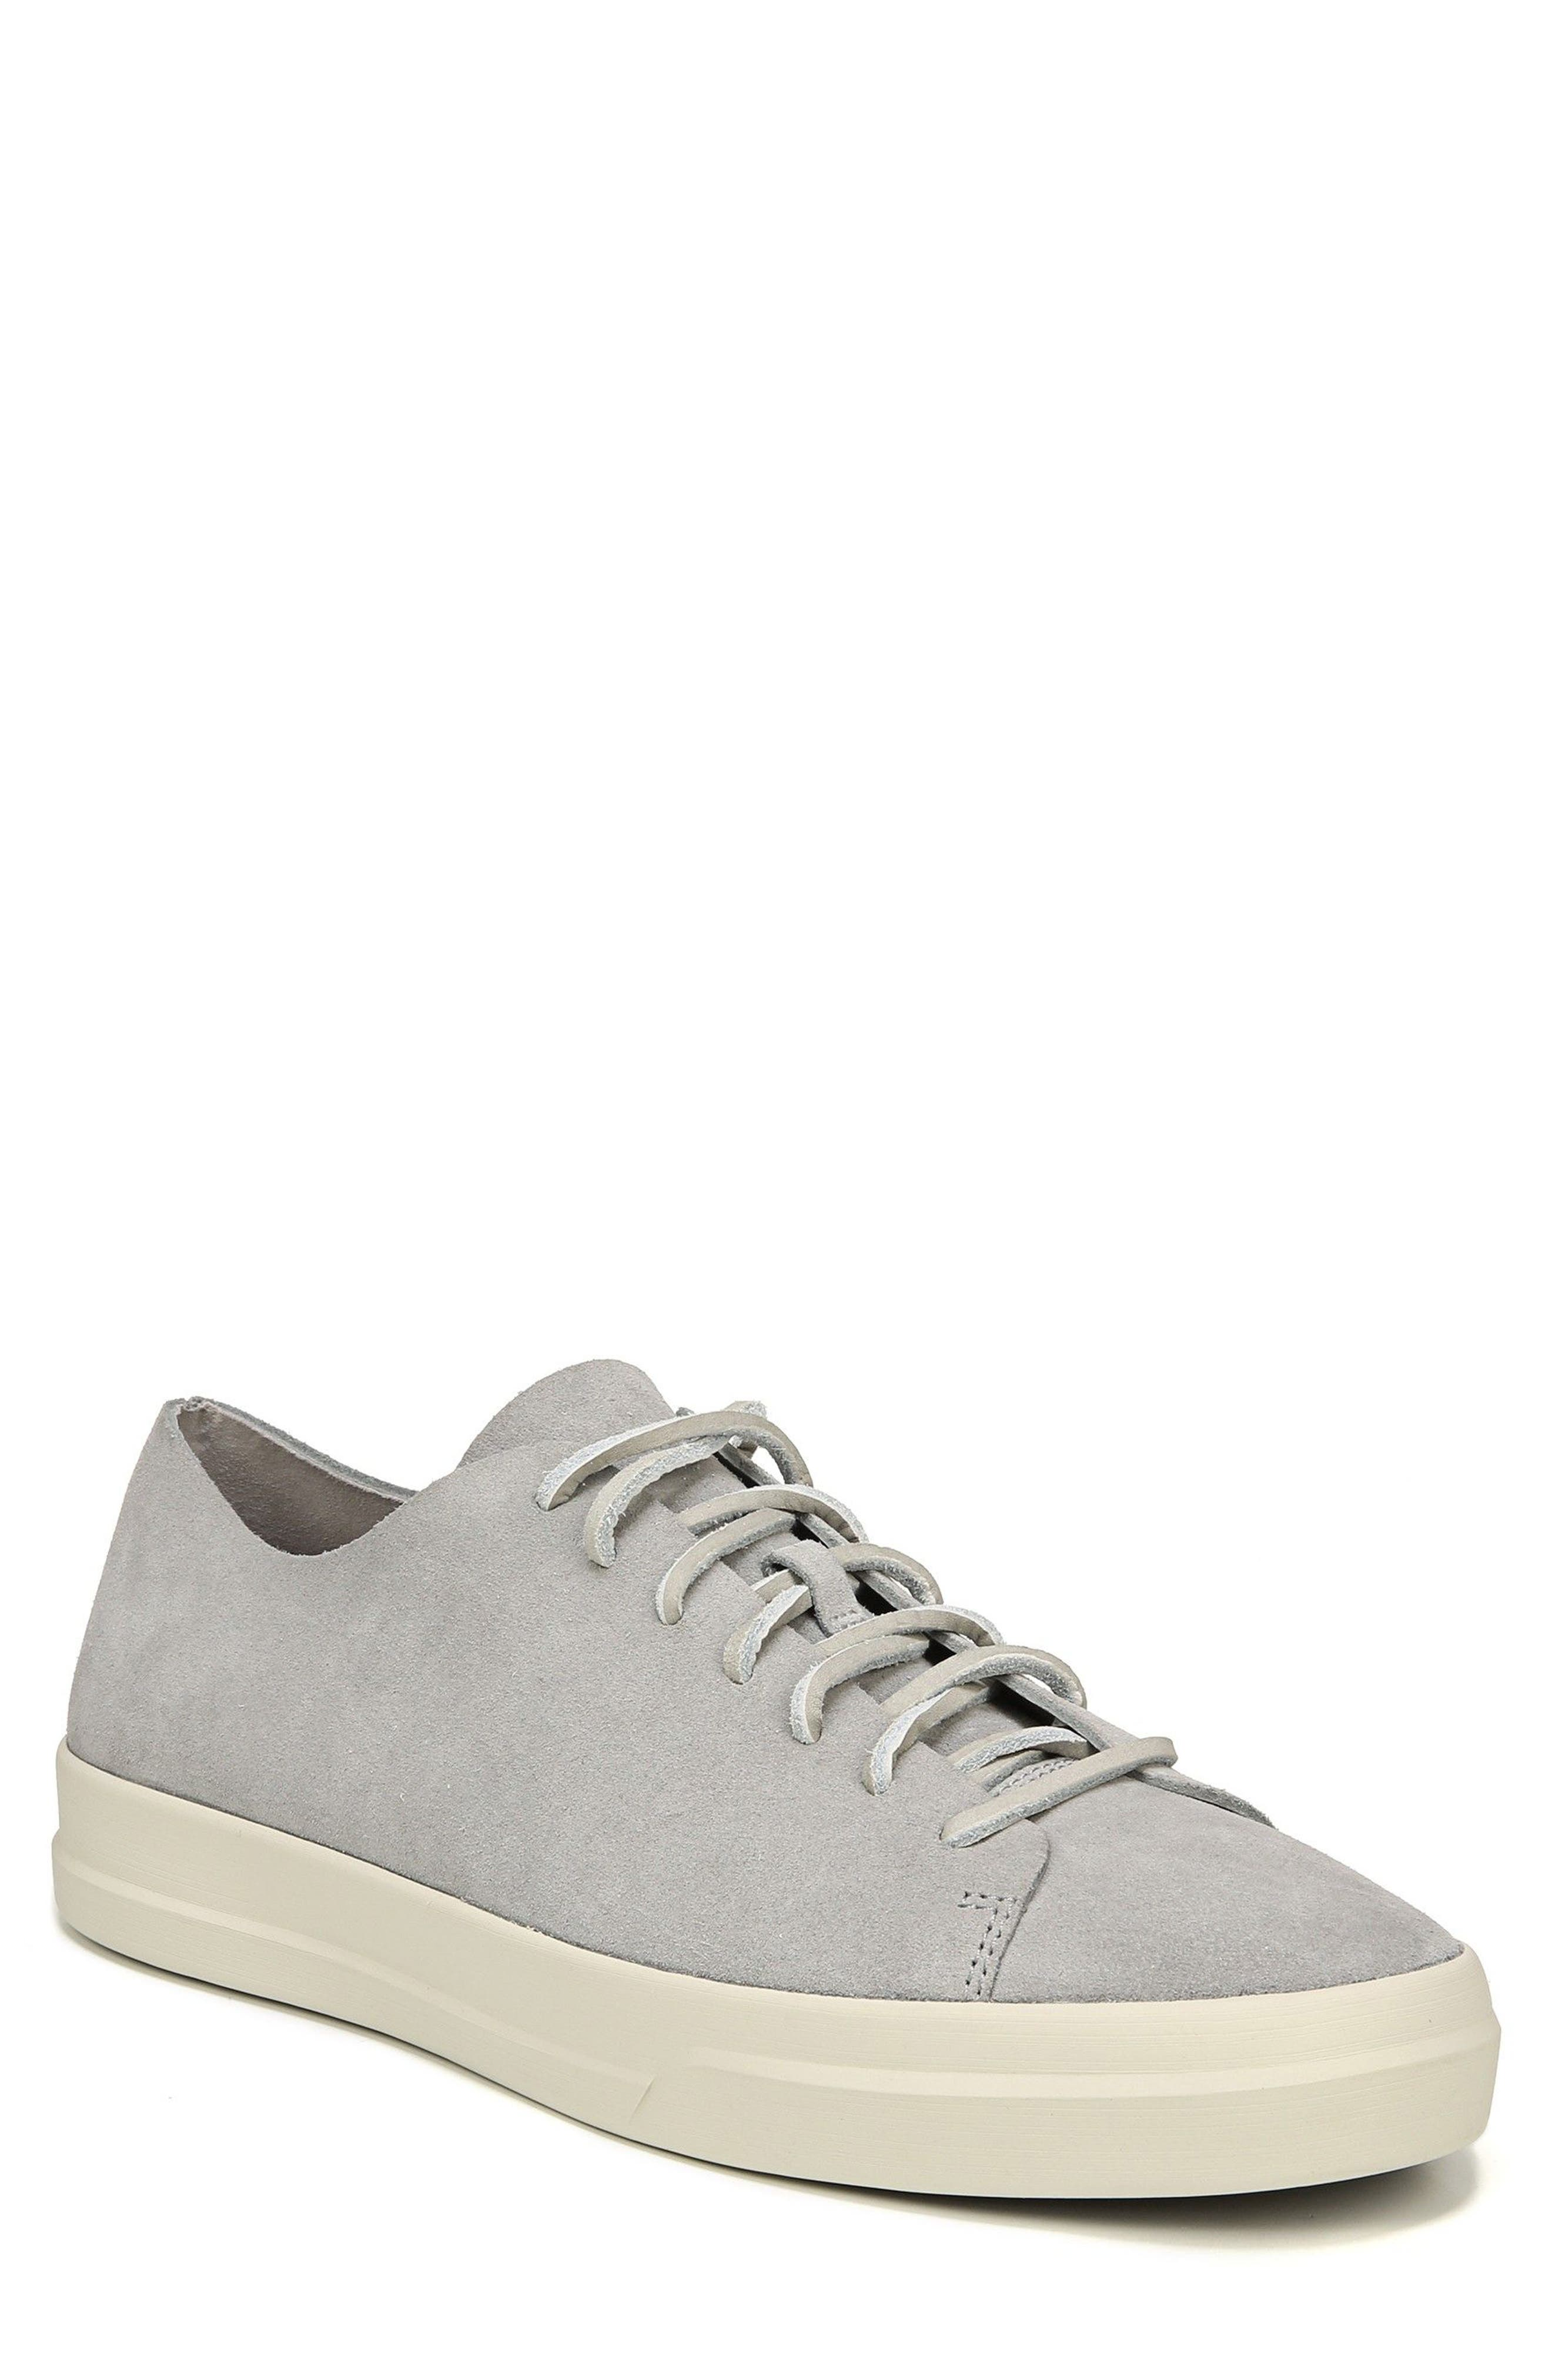 Copeland Sneaker,                         Main,                         color, 022